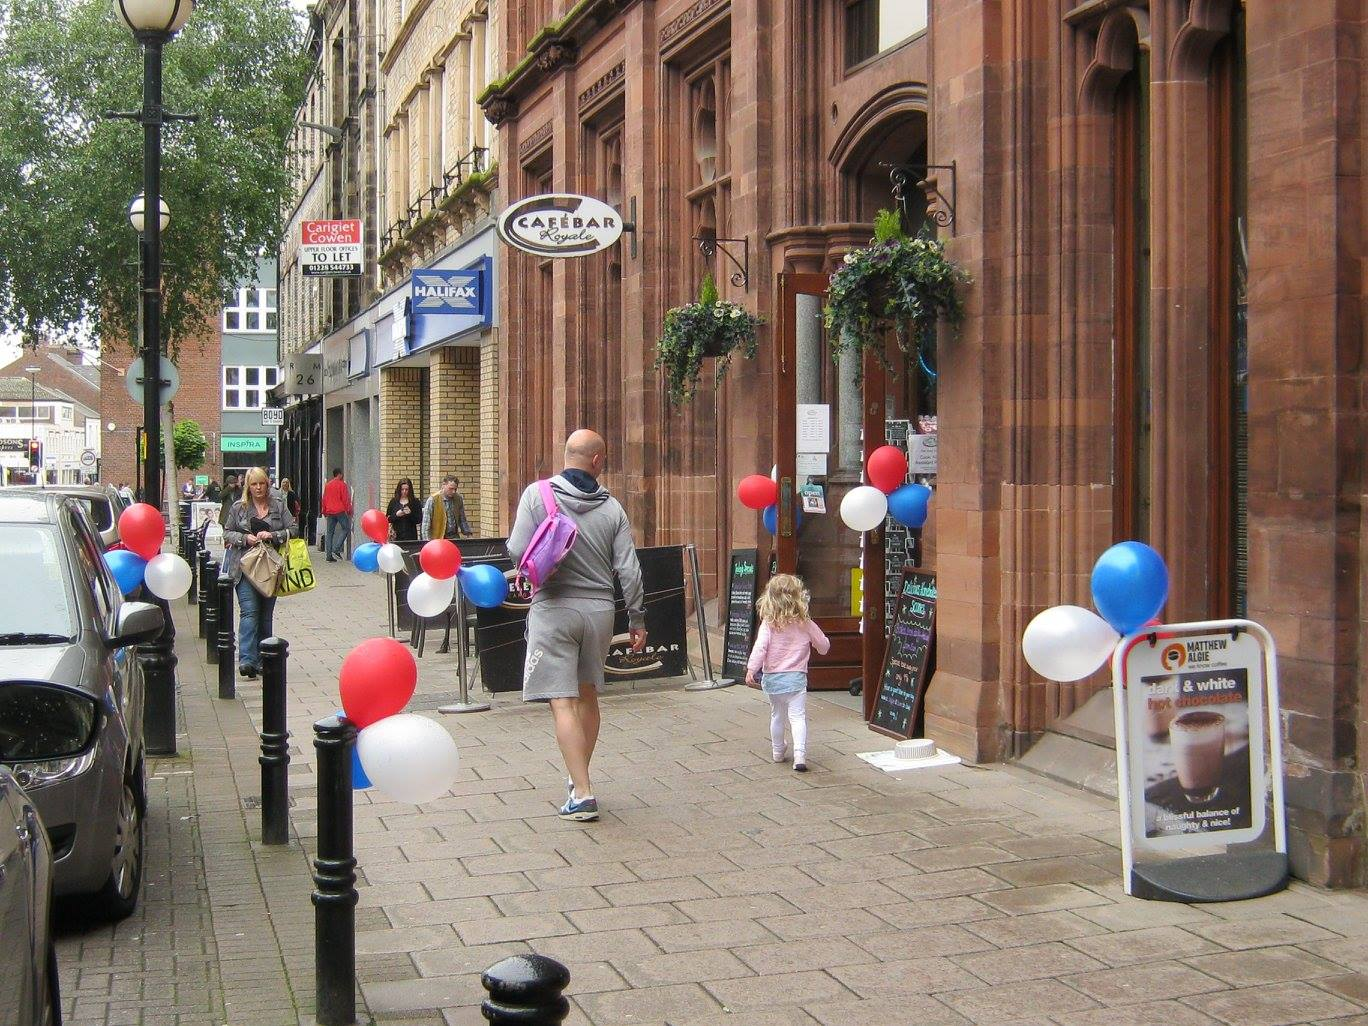 outside celebrations card shop and cafe carlisle